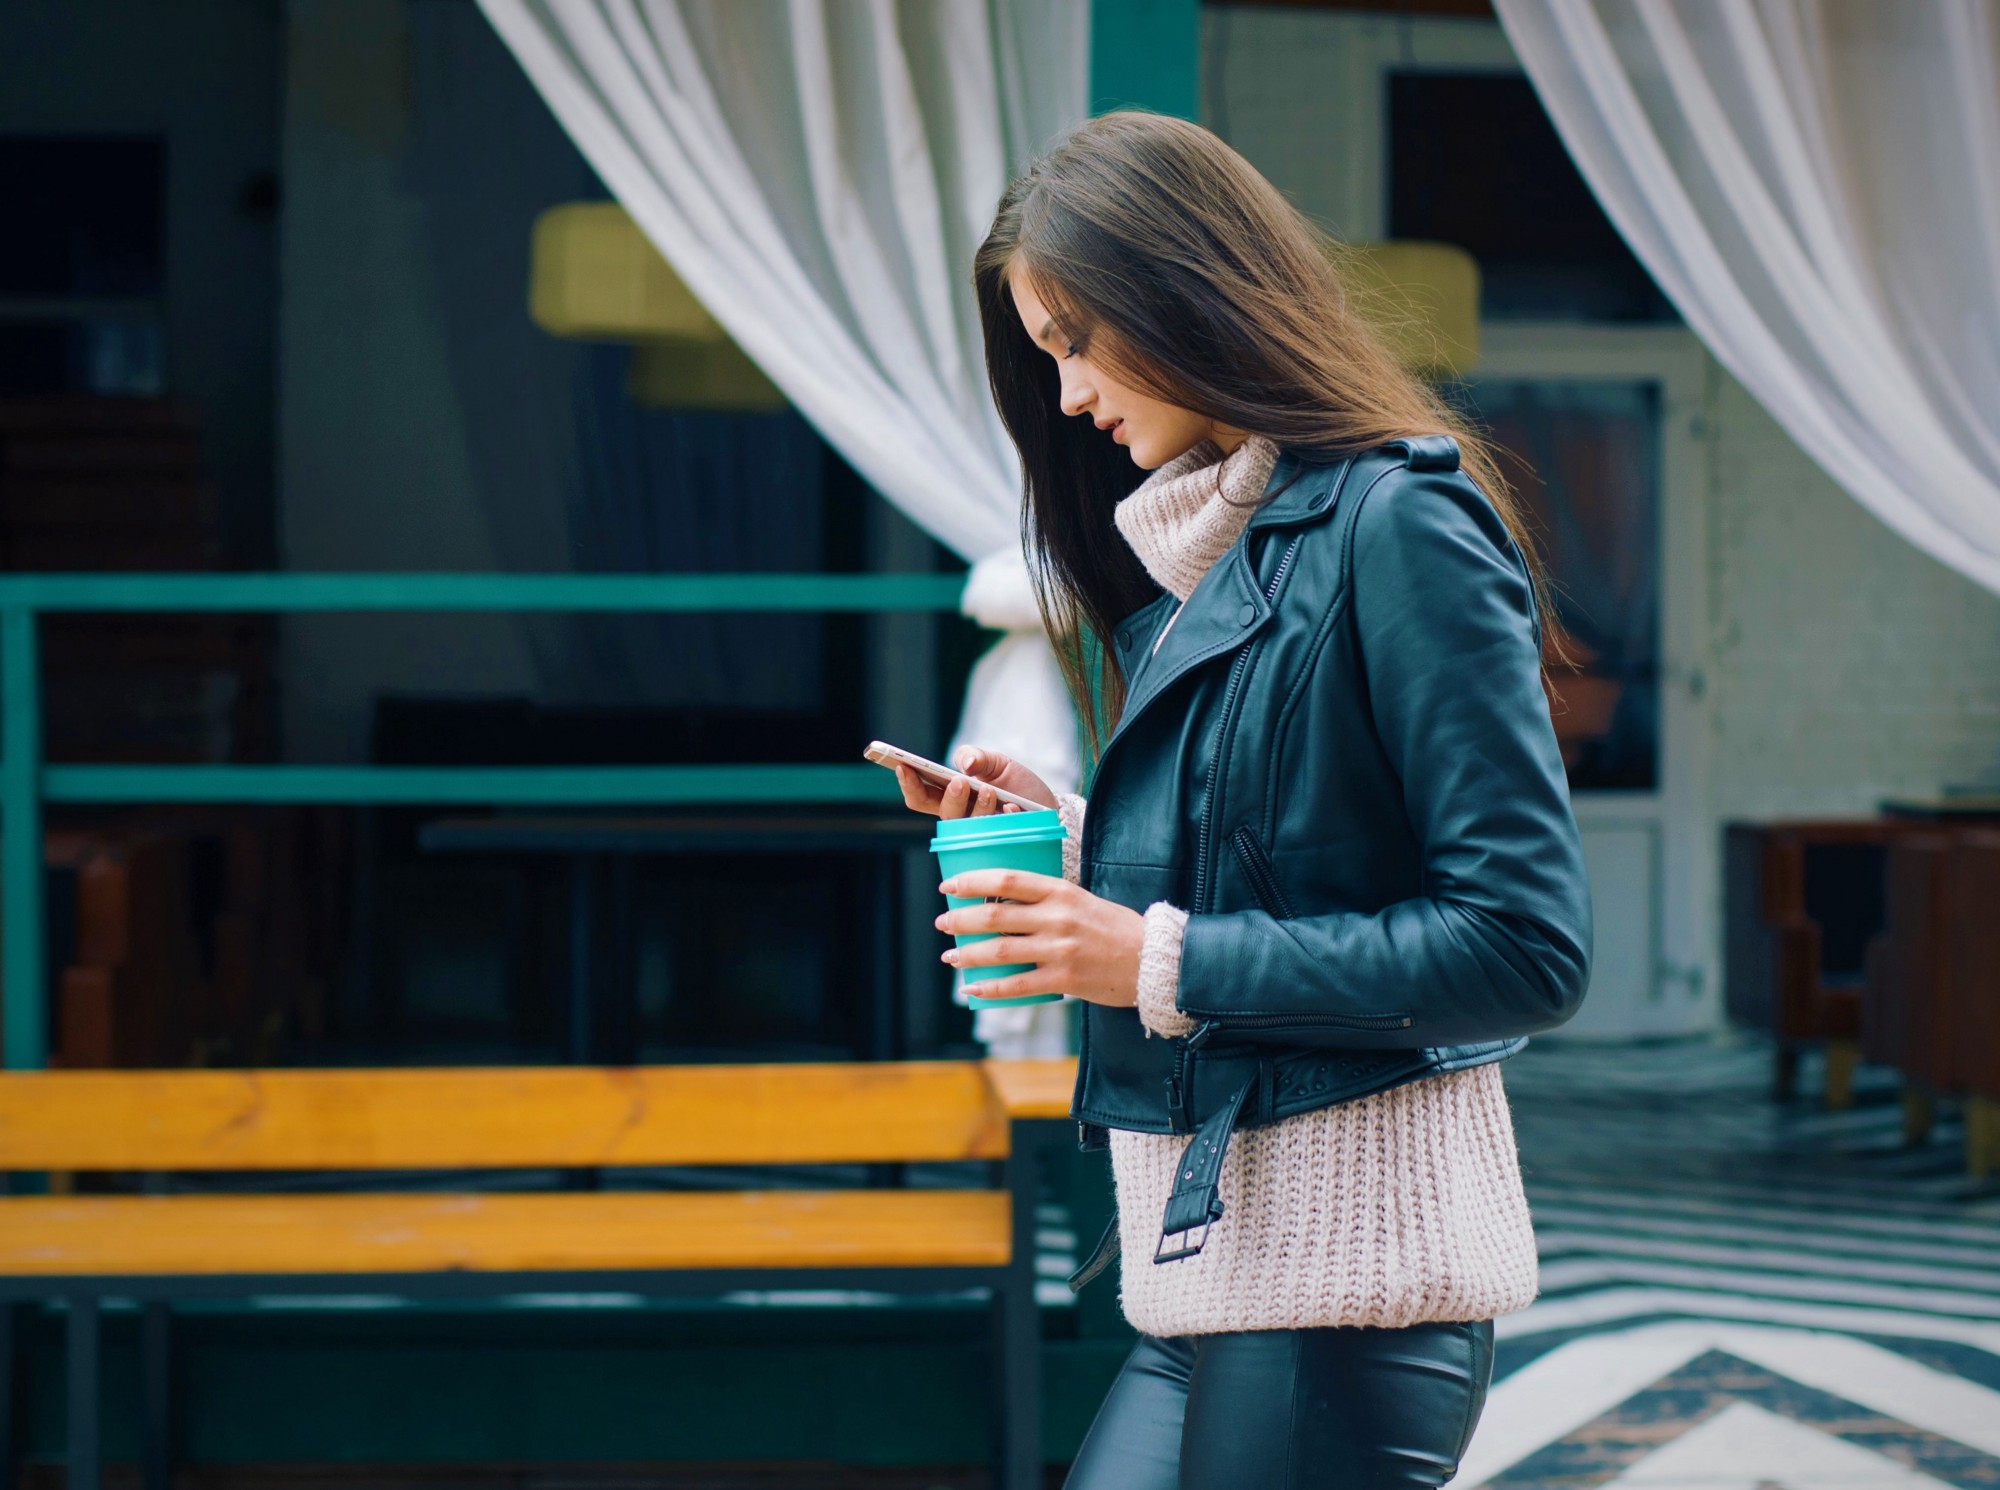 girl with long brown hair wearing black leather jacket holding cell phone and cup of coffee in her hands